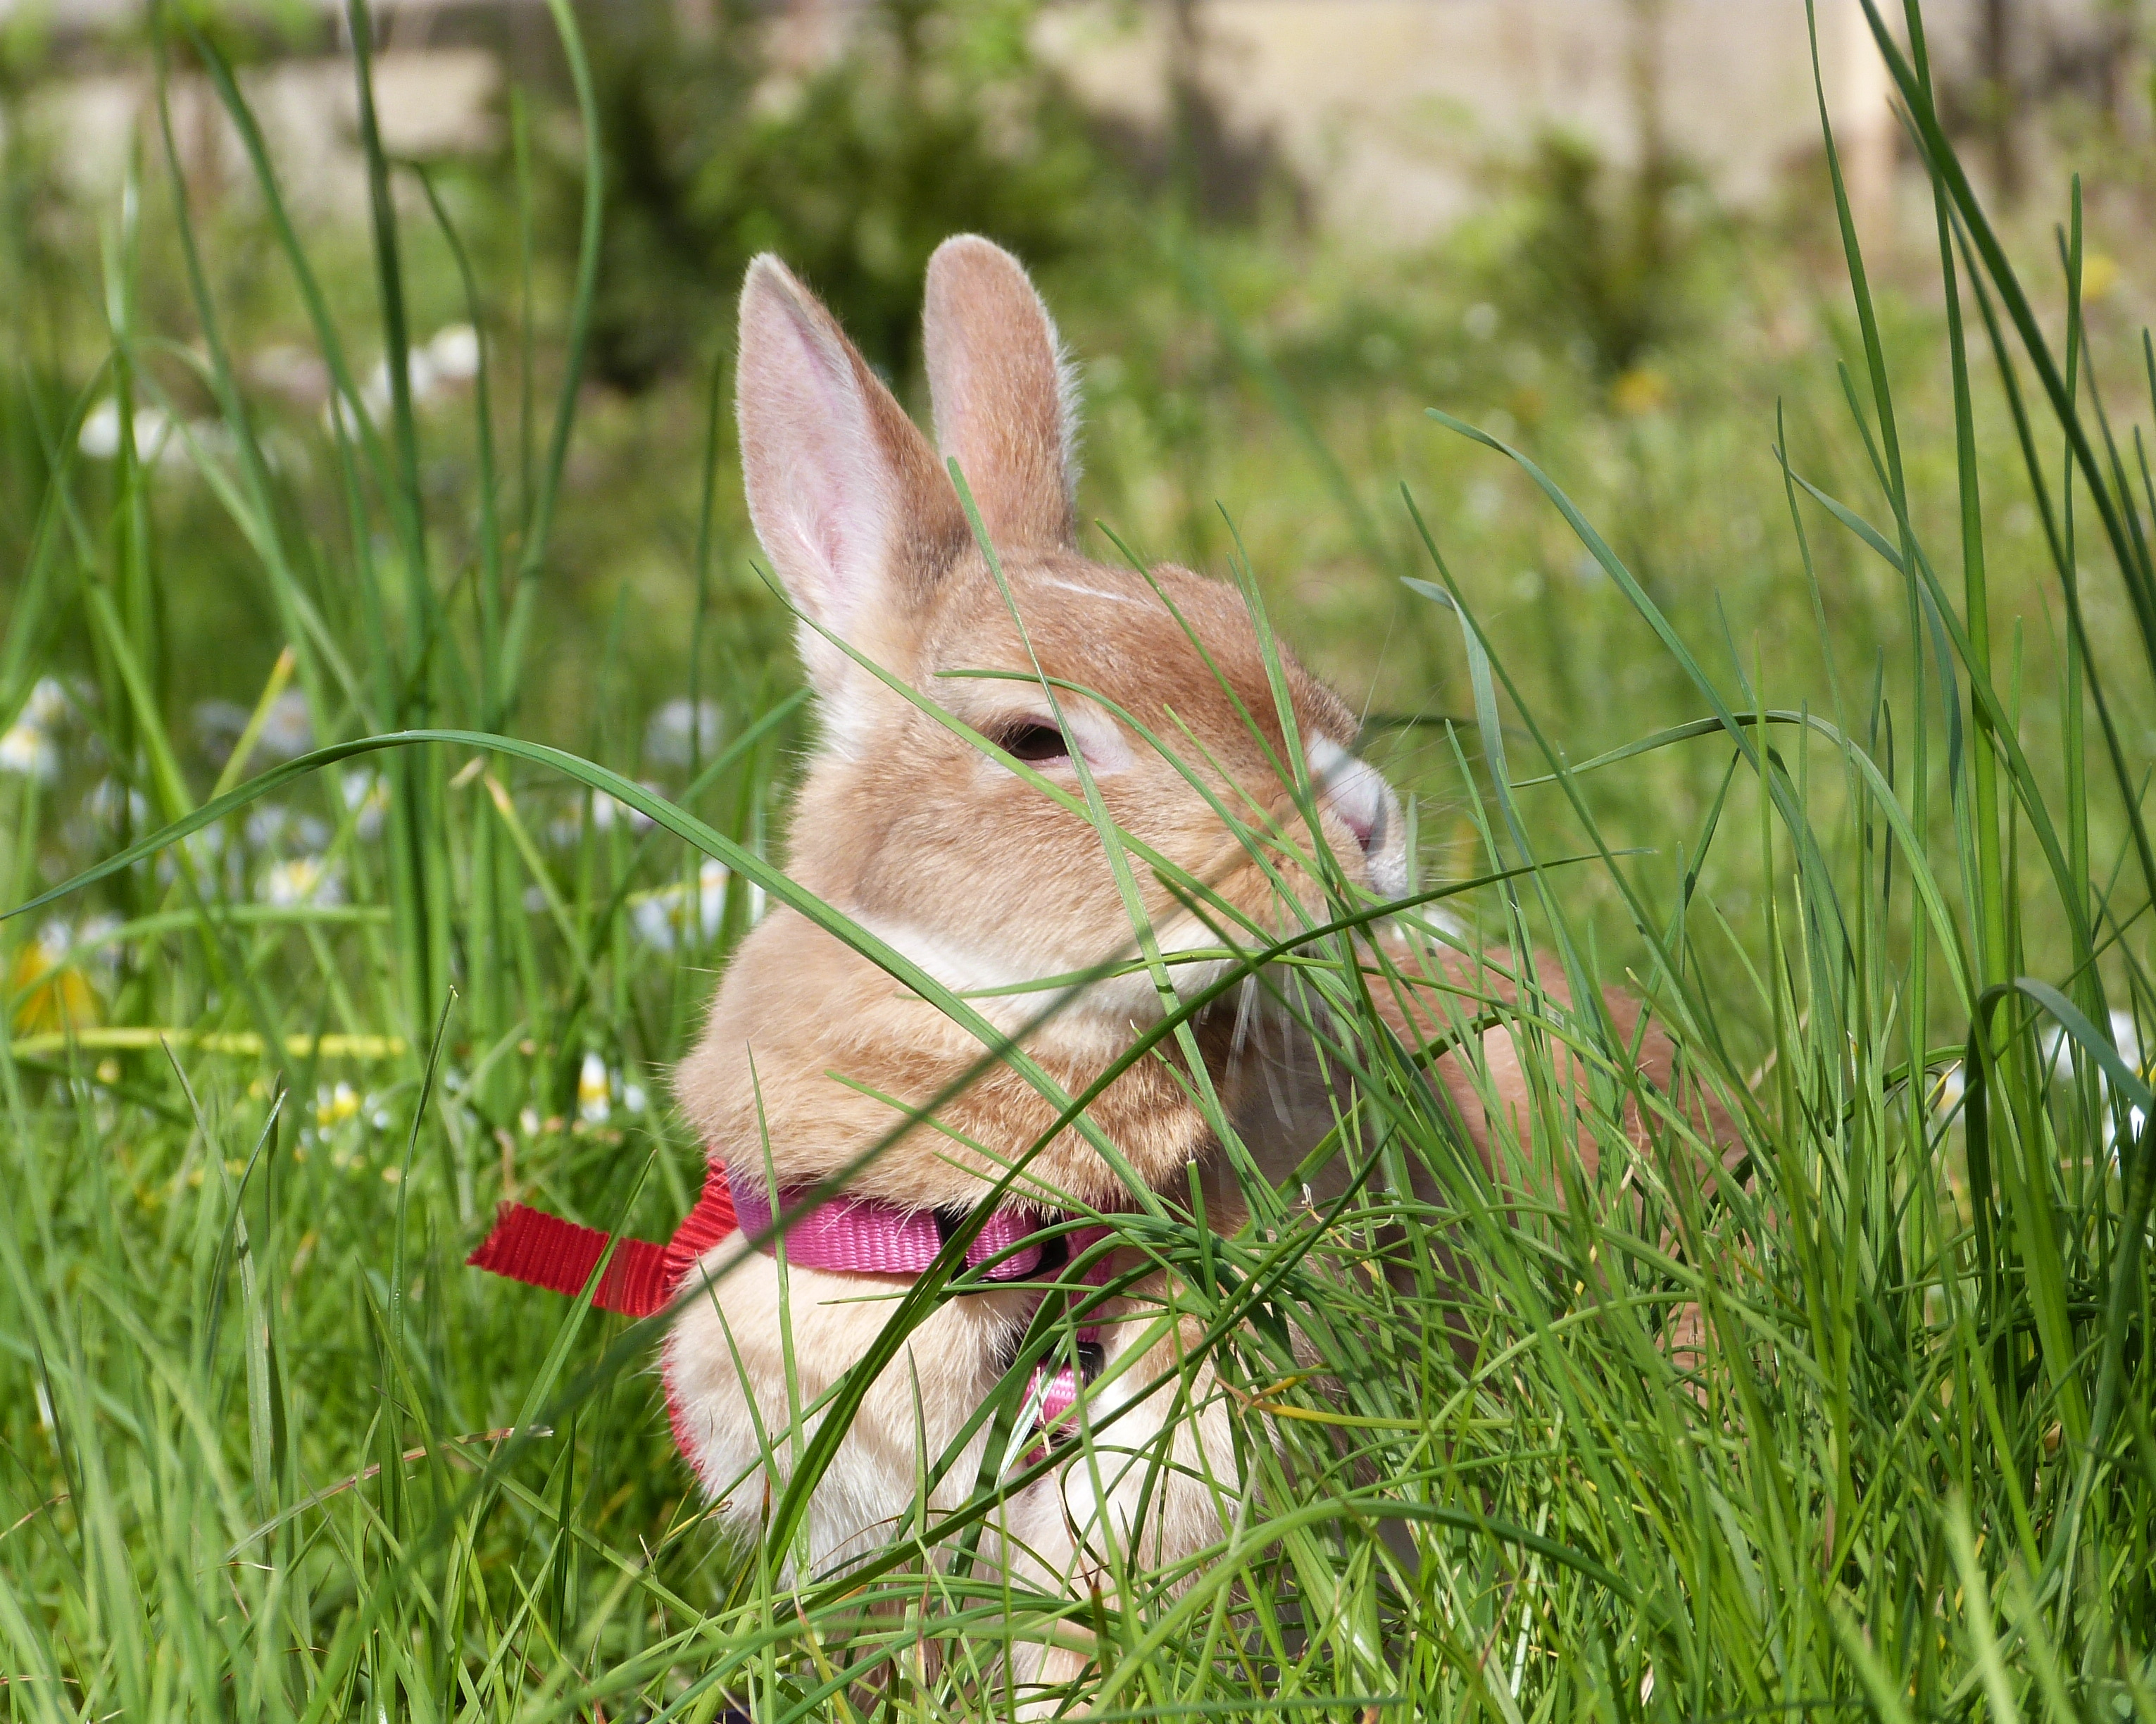 Kirby in the garden, Animal, Orange, Rabbit, Purple, HQ Photo